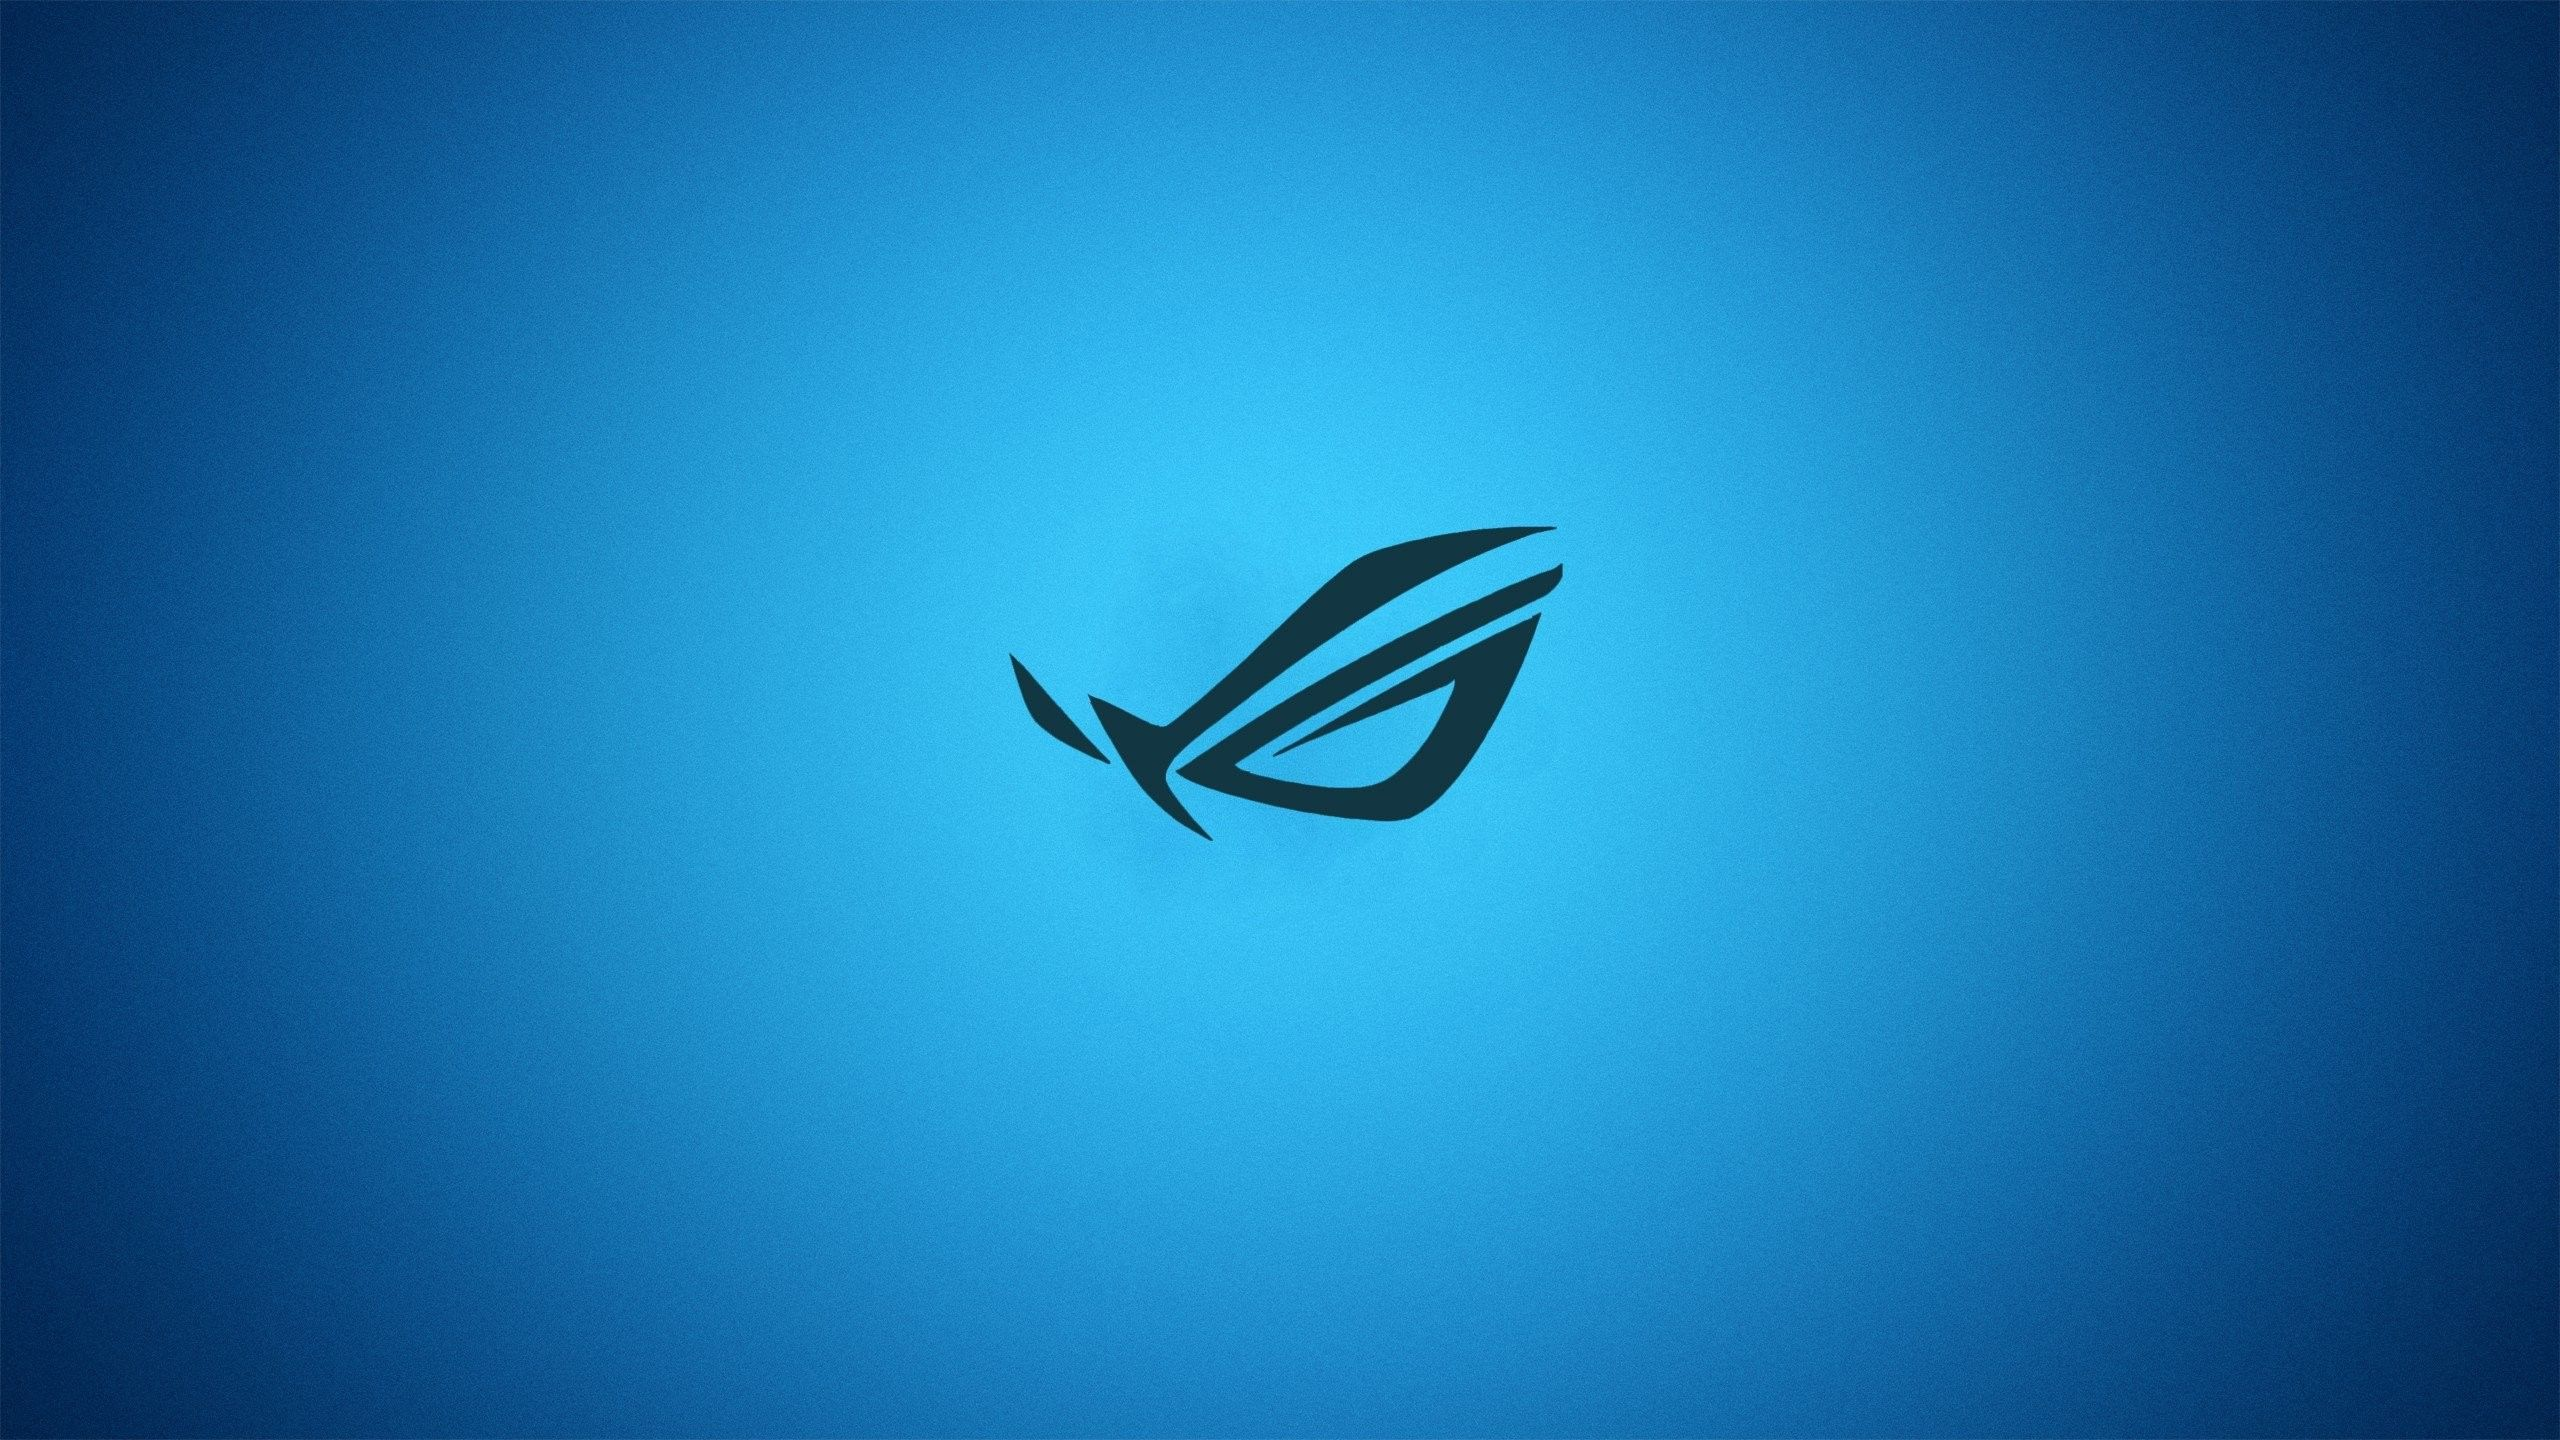 2560x1440 Blue Gaming Wallpaper (67+ images)